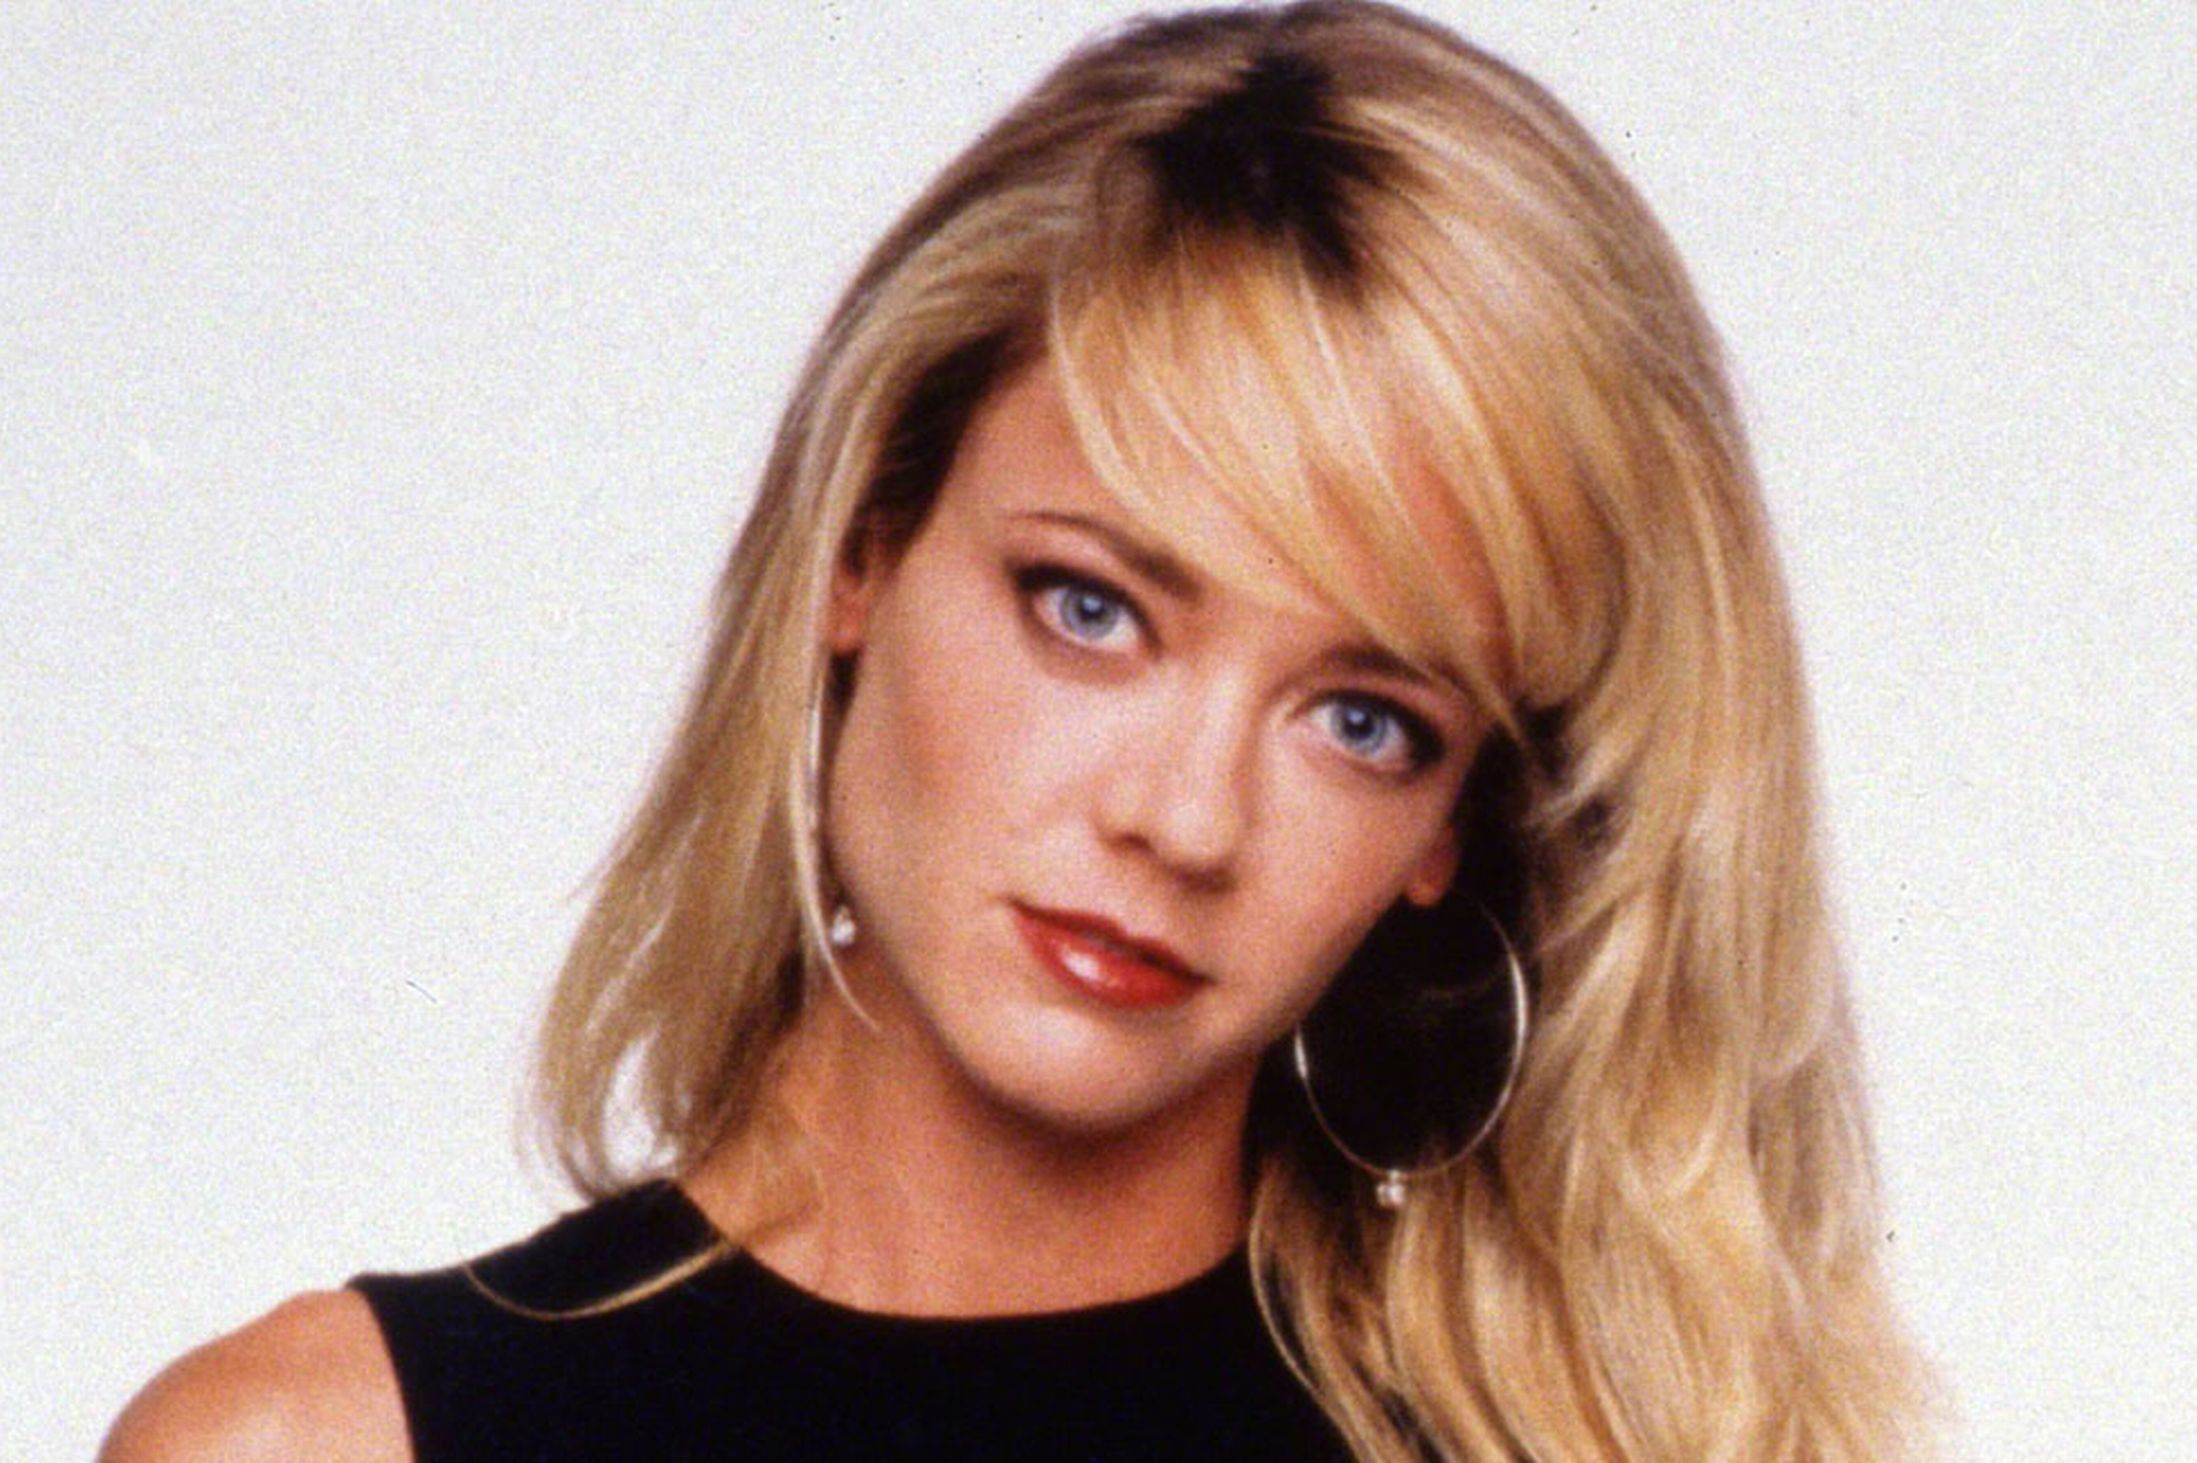 Celebrities who died young Lisa Robin Kelly (March 5, 1970 – August